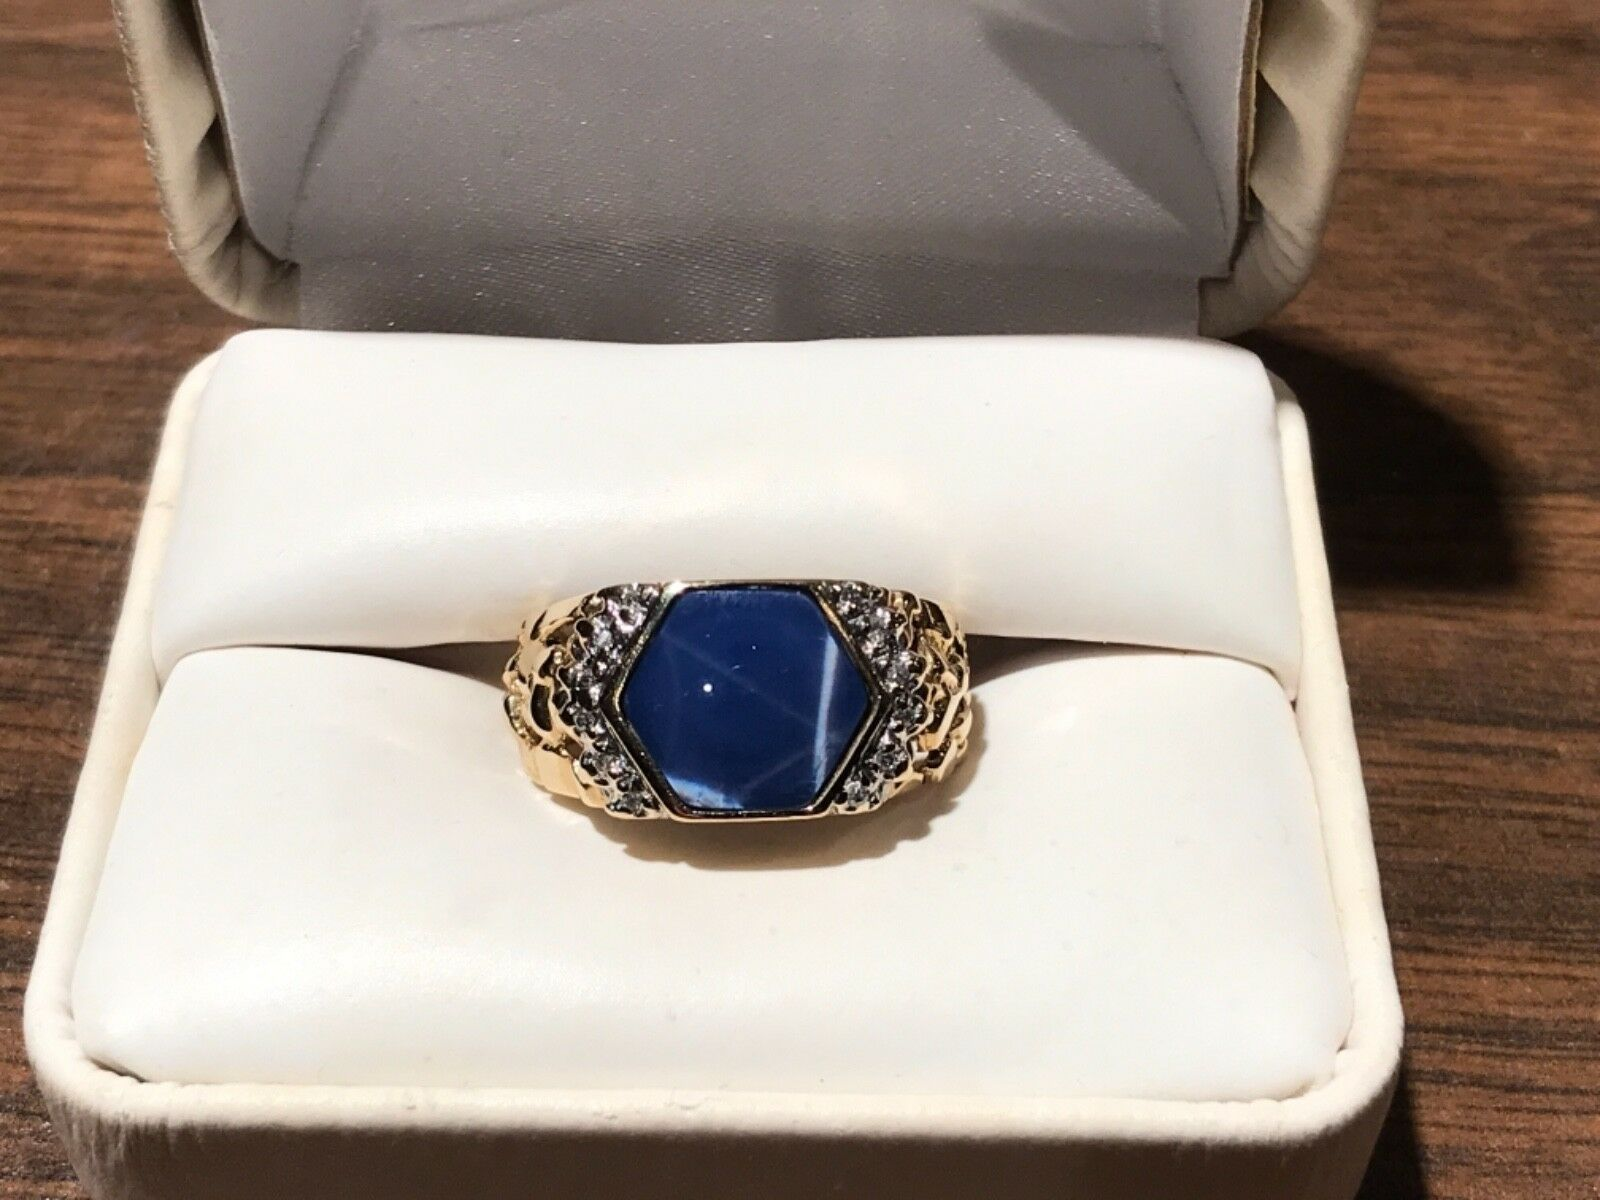 14KT TW0-TONE gold RING WITH blueE STAR OF SAPPHIRE W DIAMOND ACCENTS